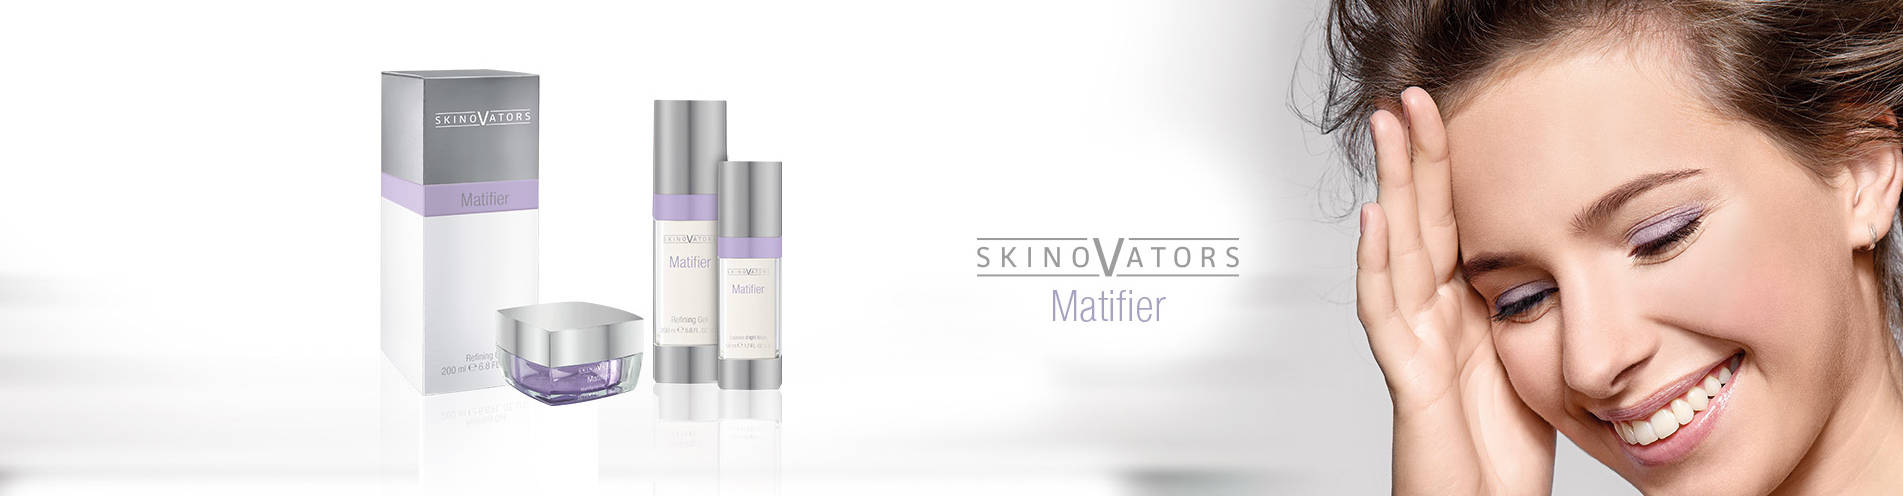 Your brand name or label on Matifier Private Label Cosmetics German Manufacturer